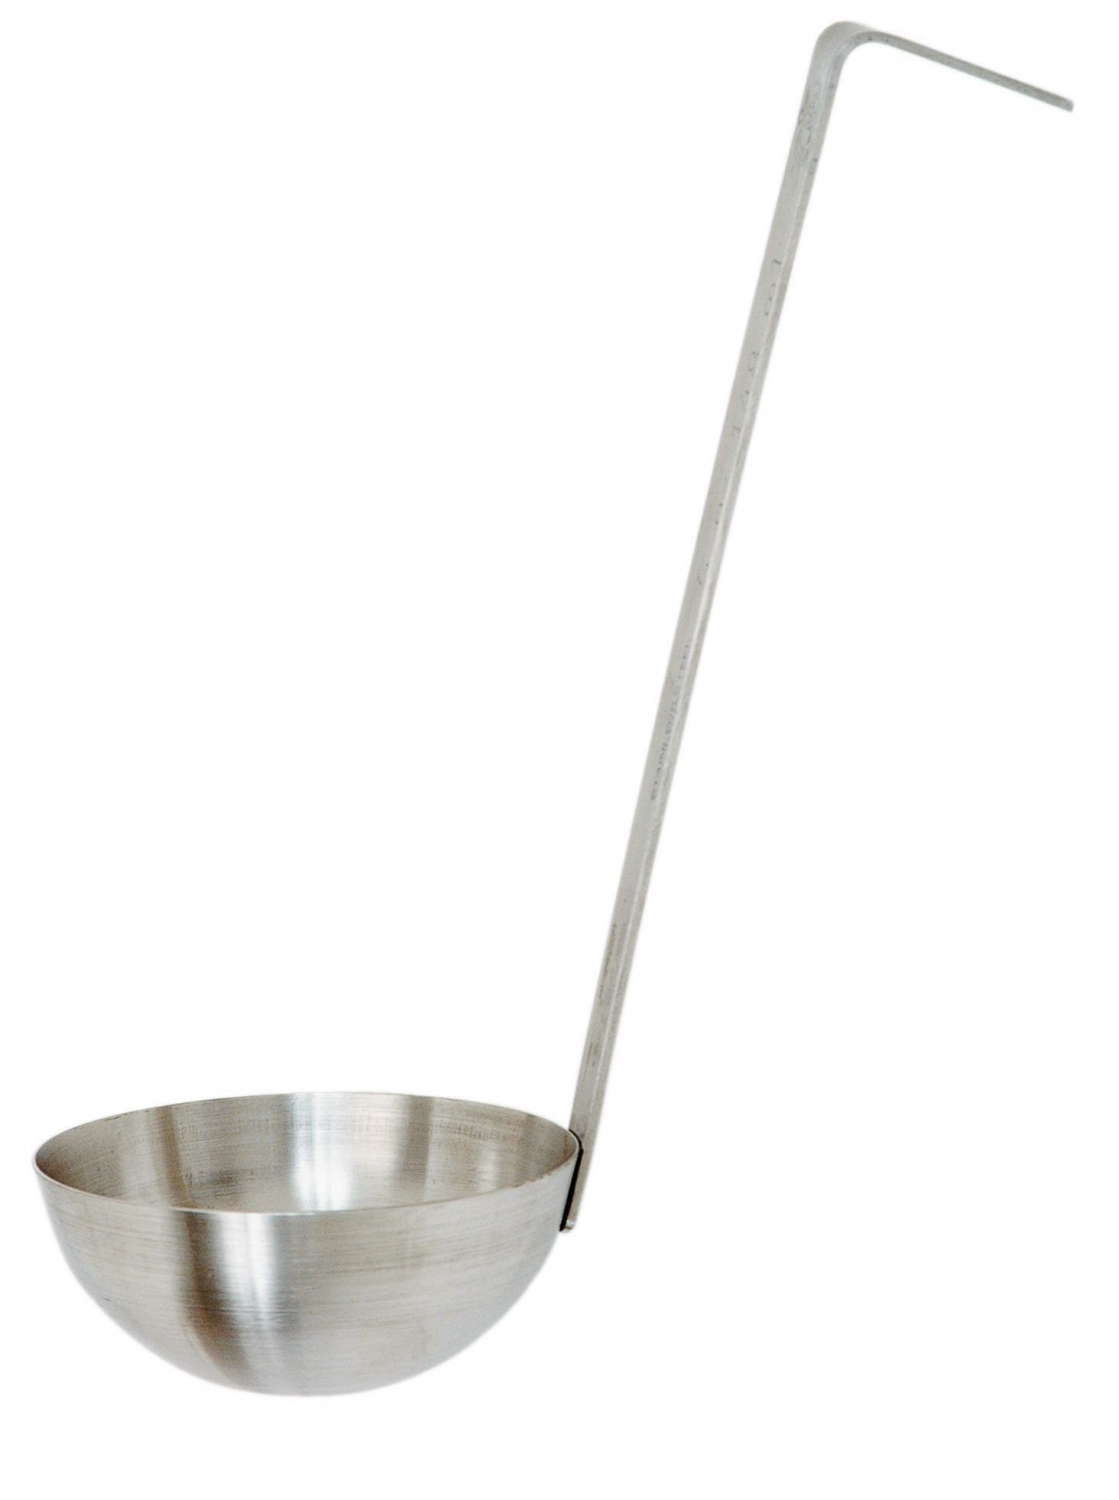 "Johnson Rose 73005 Ladle 5 oz with 7"" Handle"